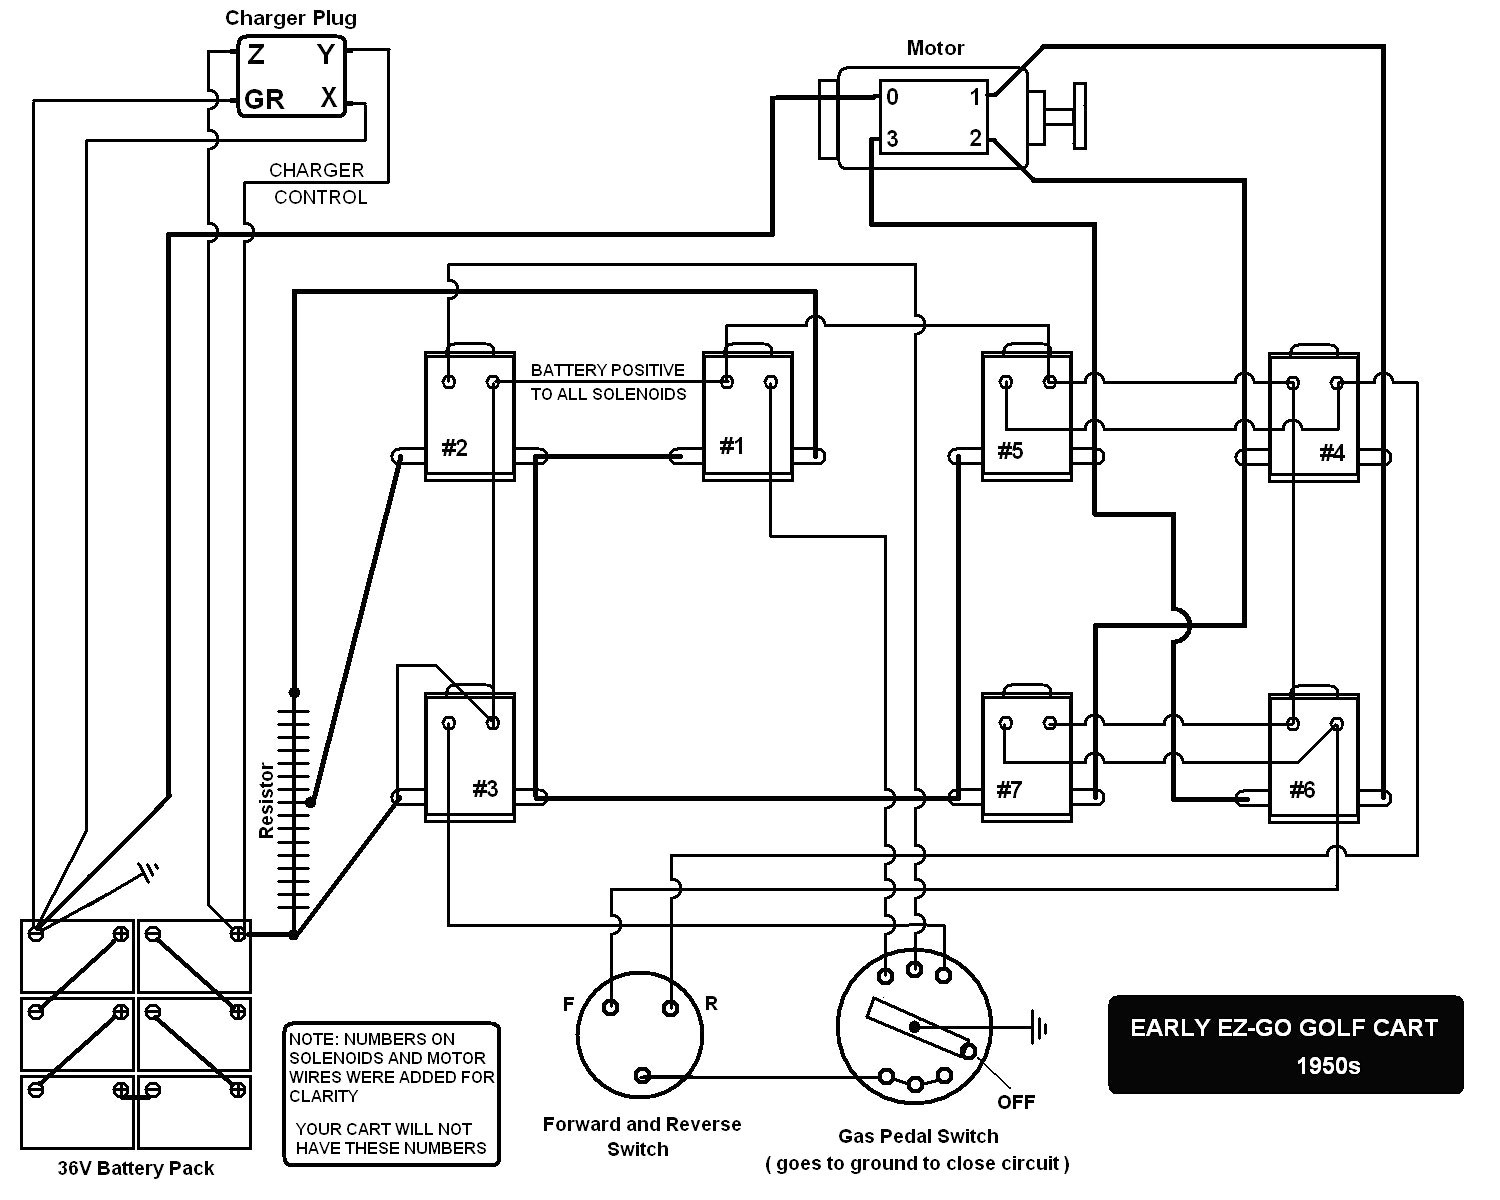 A1388 Ez Go Wiring Diagram | Wiring Diagram on